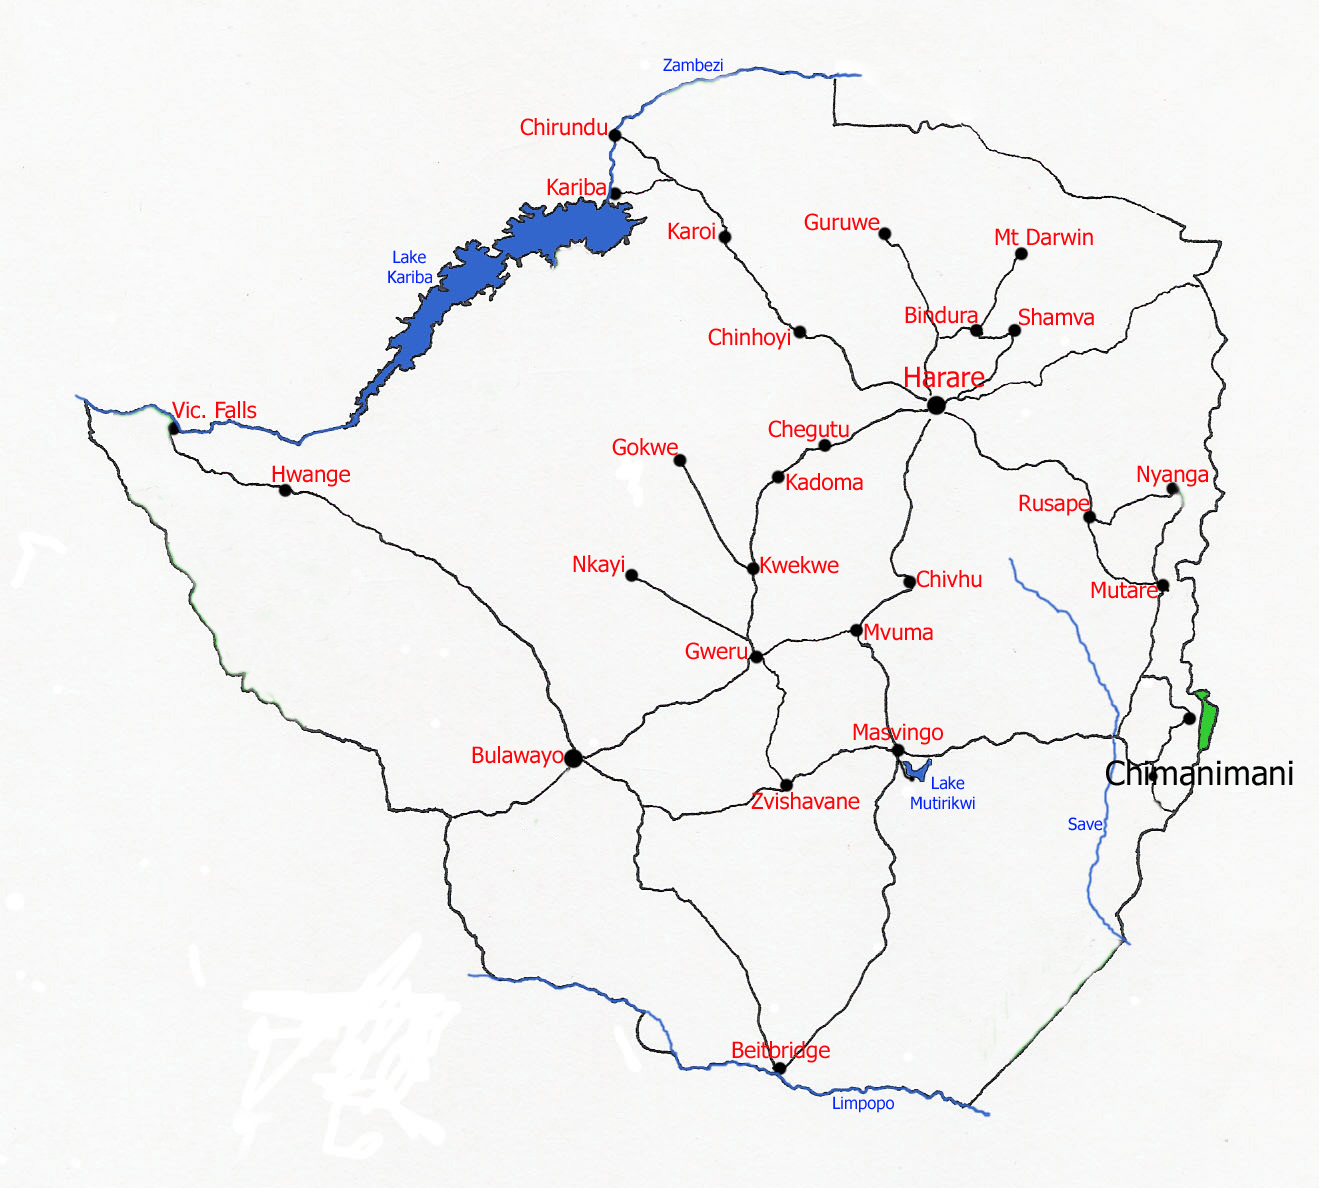 Map showing location of Chimanimani Mts National Park.